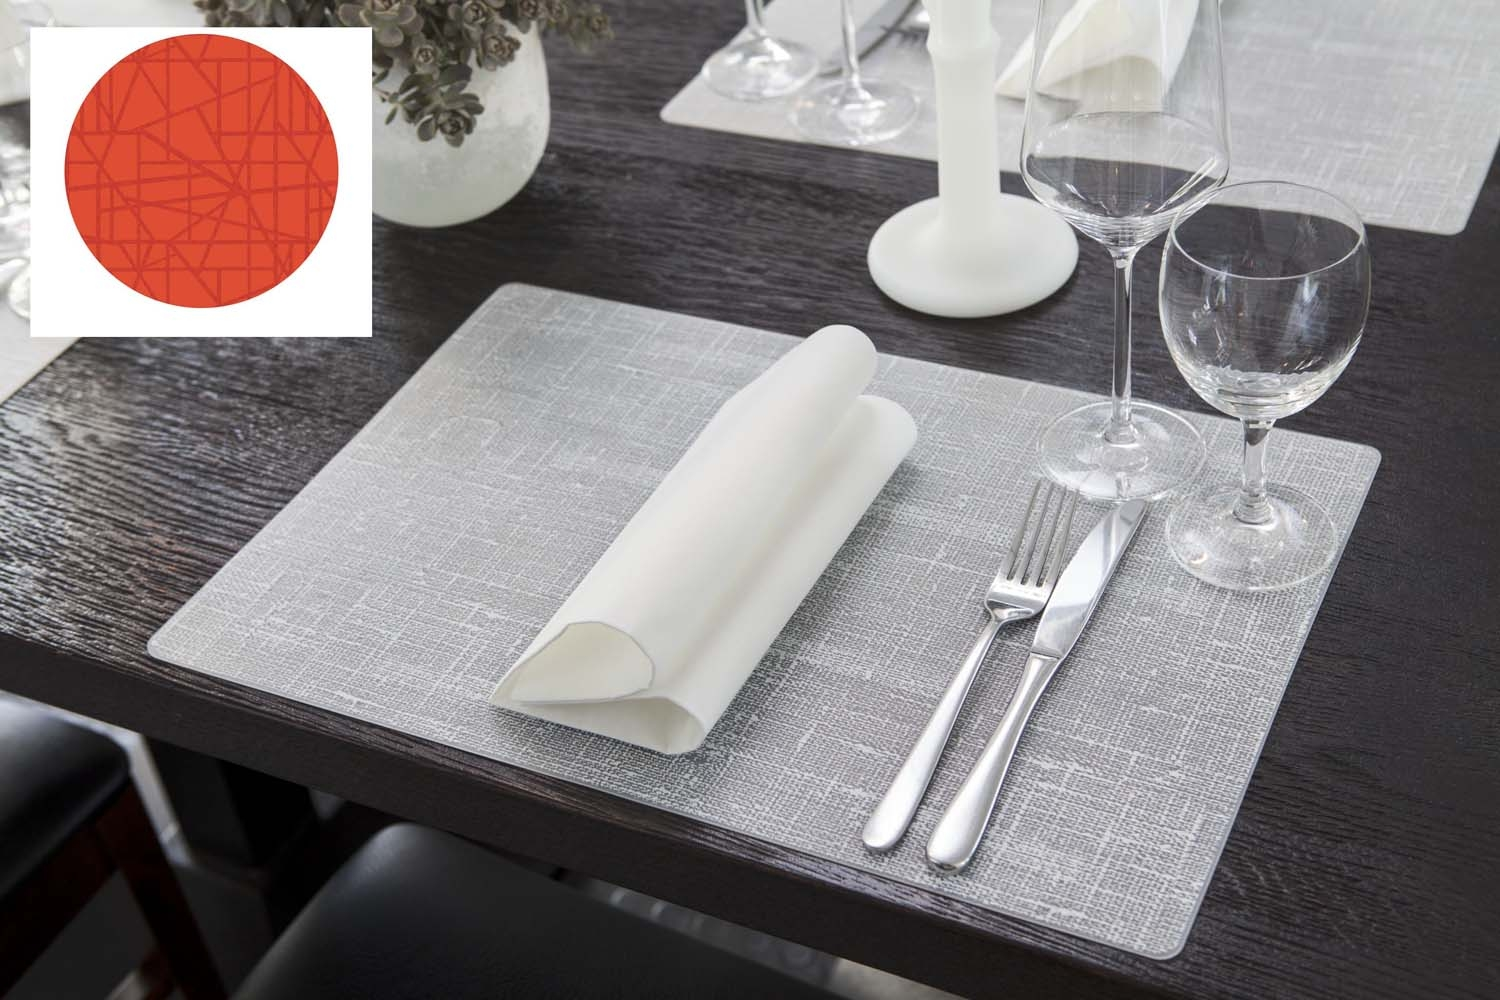 Placemat machine washable silicone tangerine 30 x 45 cm Duni